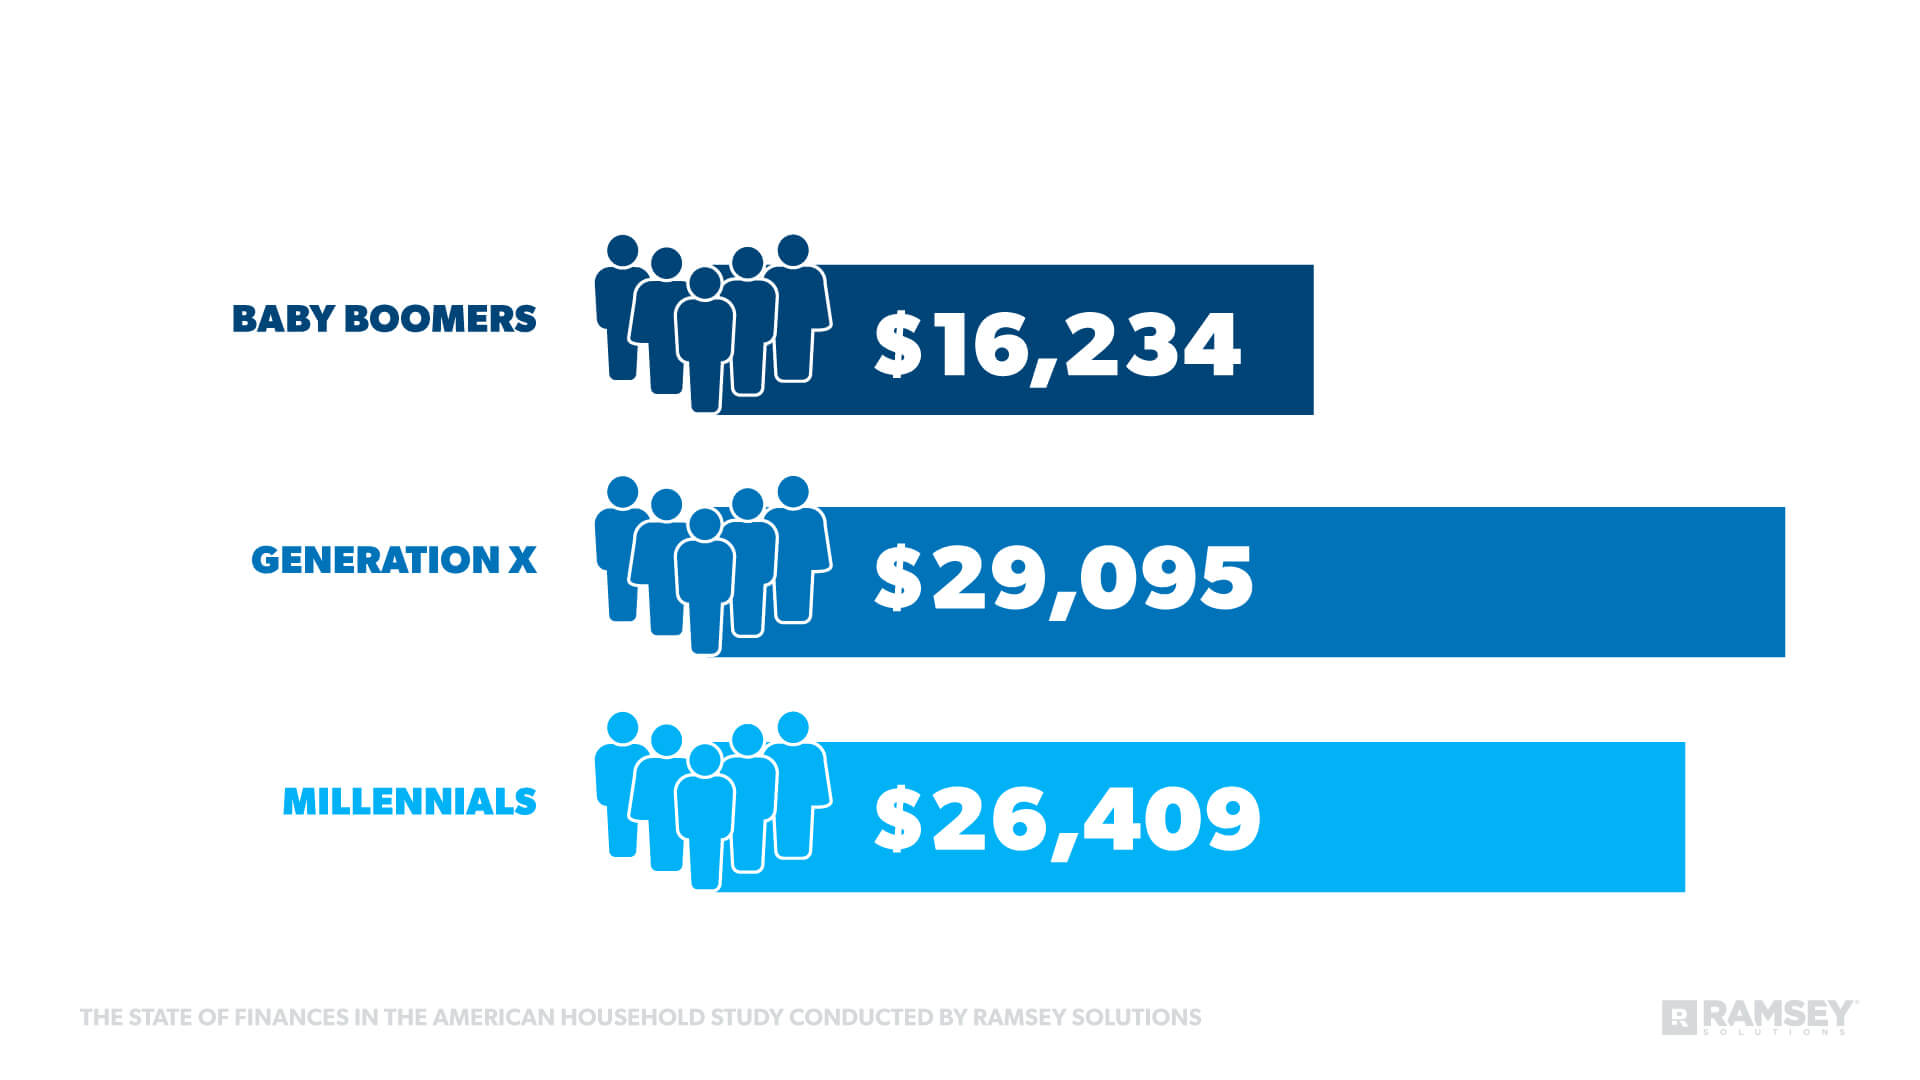 Average Consumer Debt Across Generations